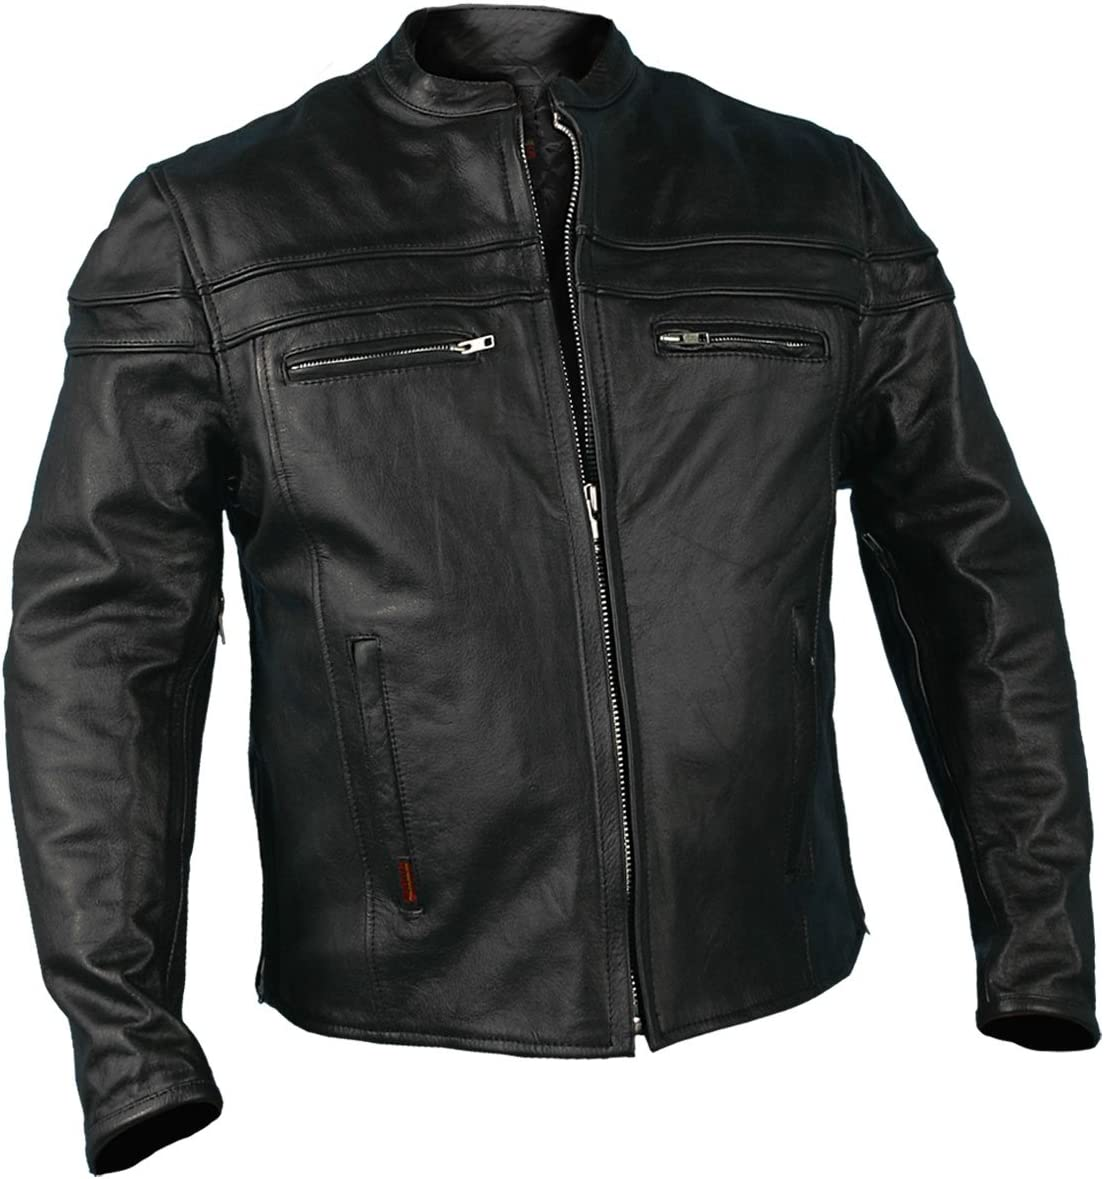 Hot Leathers Men's Heavyweight Jacket with Double Piping